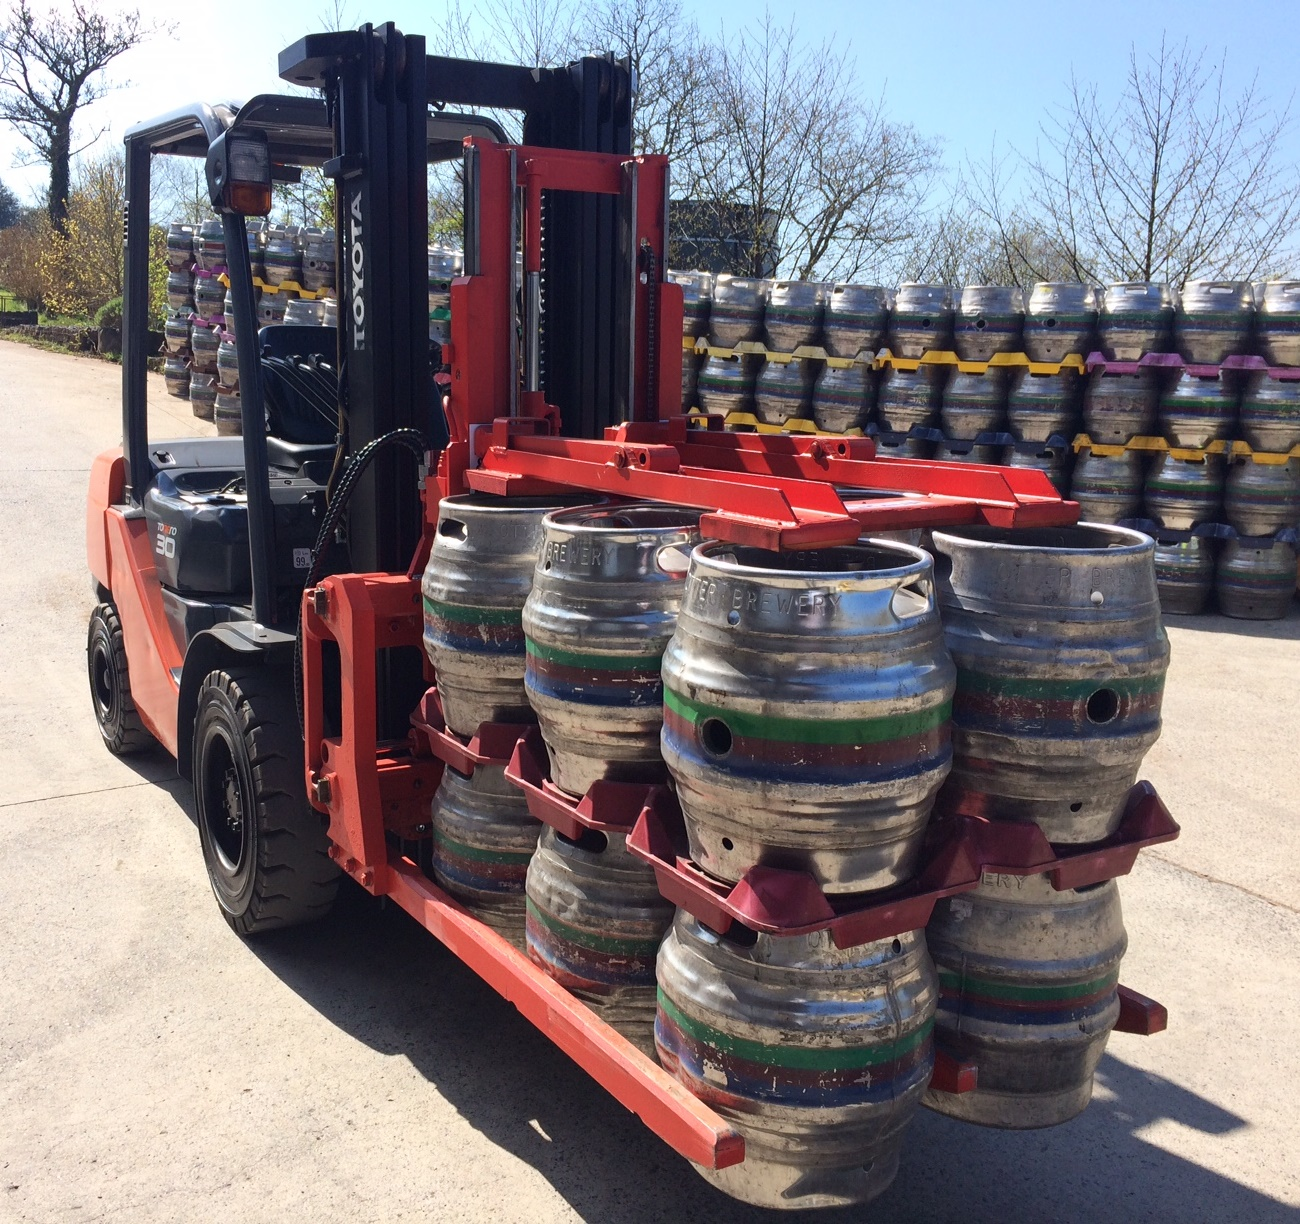 KAUP Customised Keg Clamp Attachment Improves Productivity at Otter Brewery